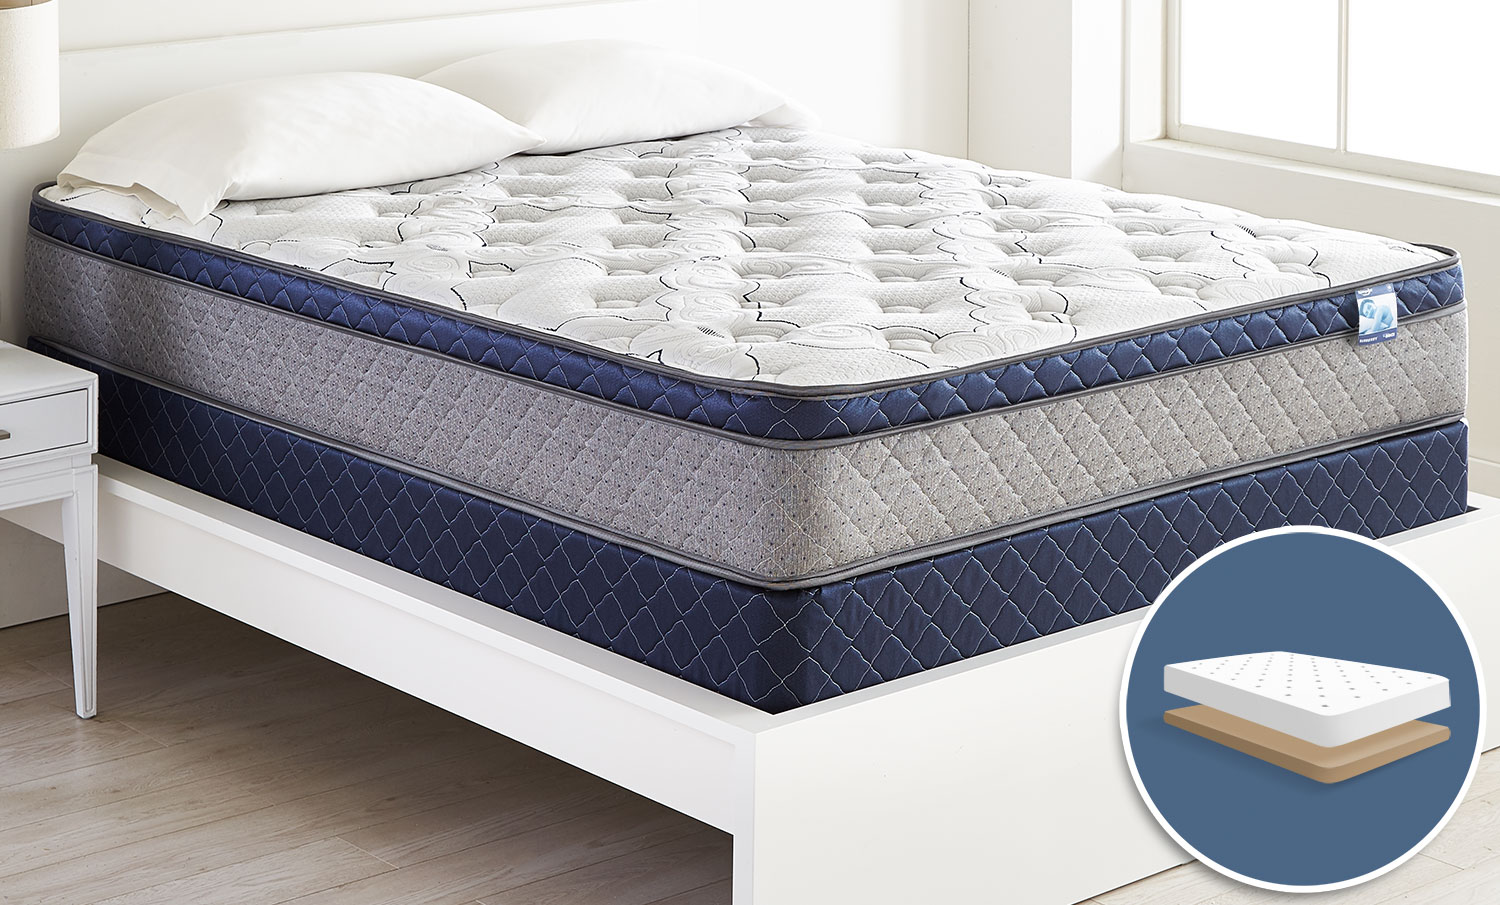 Mattresses and Bedding - Springwall Burberry Euro-Top Firm King Mattress and Low-Profile Boxspring Set